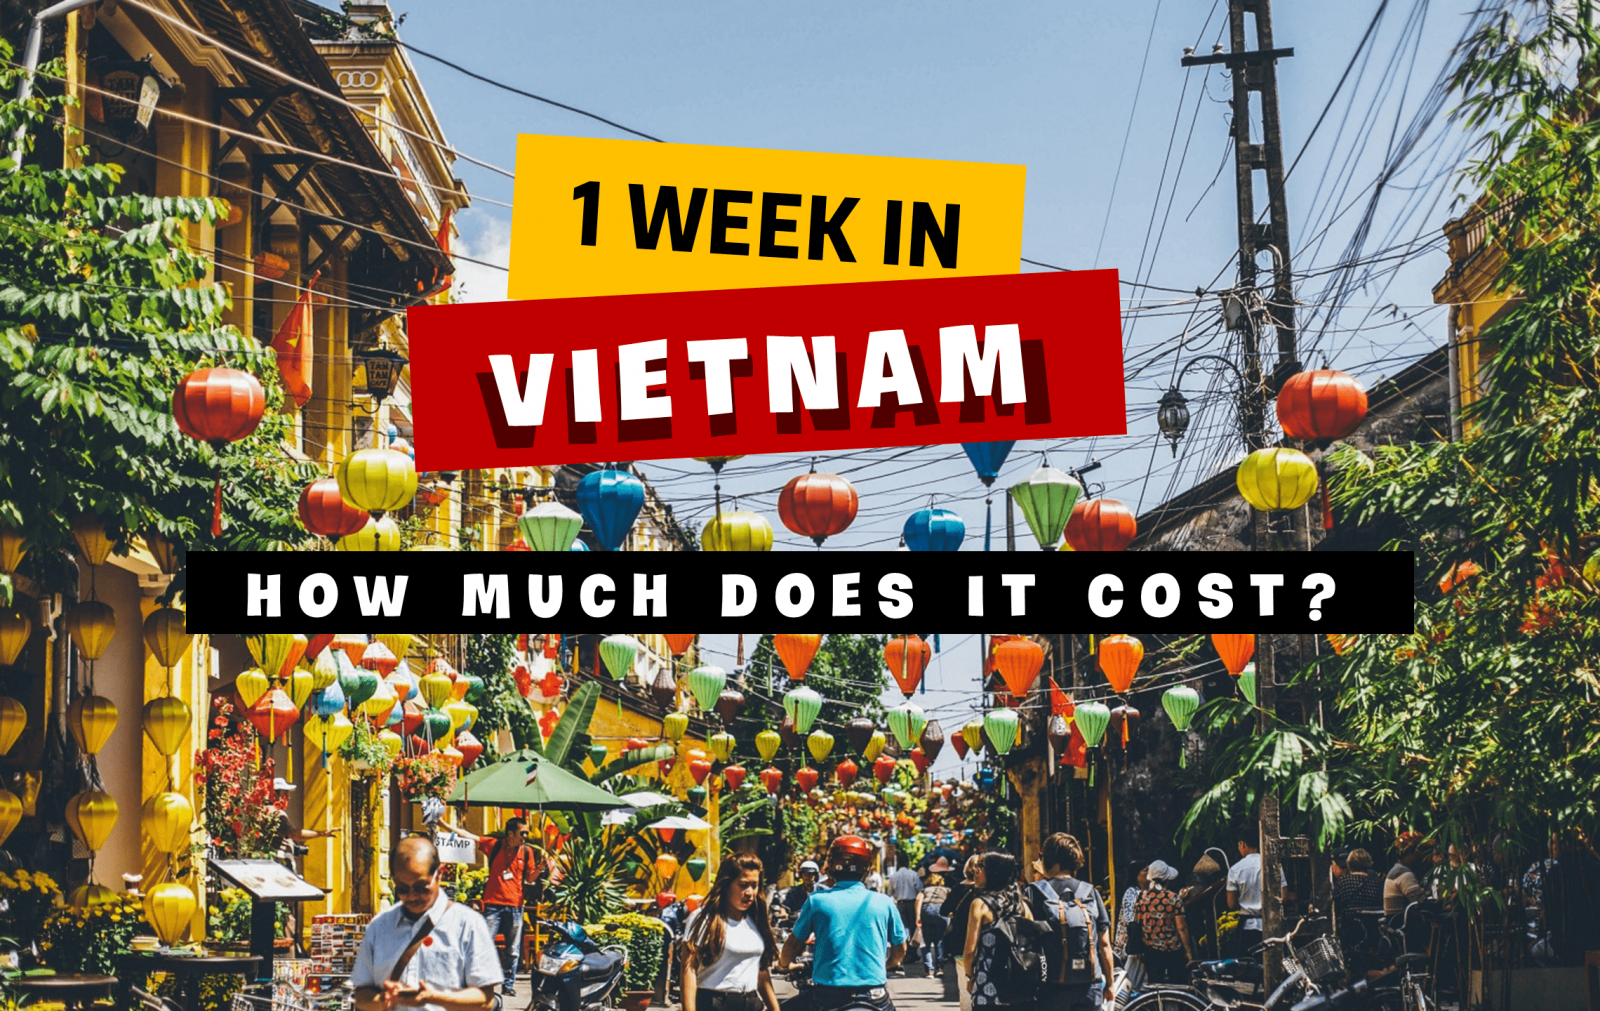 How much does it cost to travel to Vietnam for 1 week?